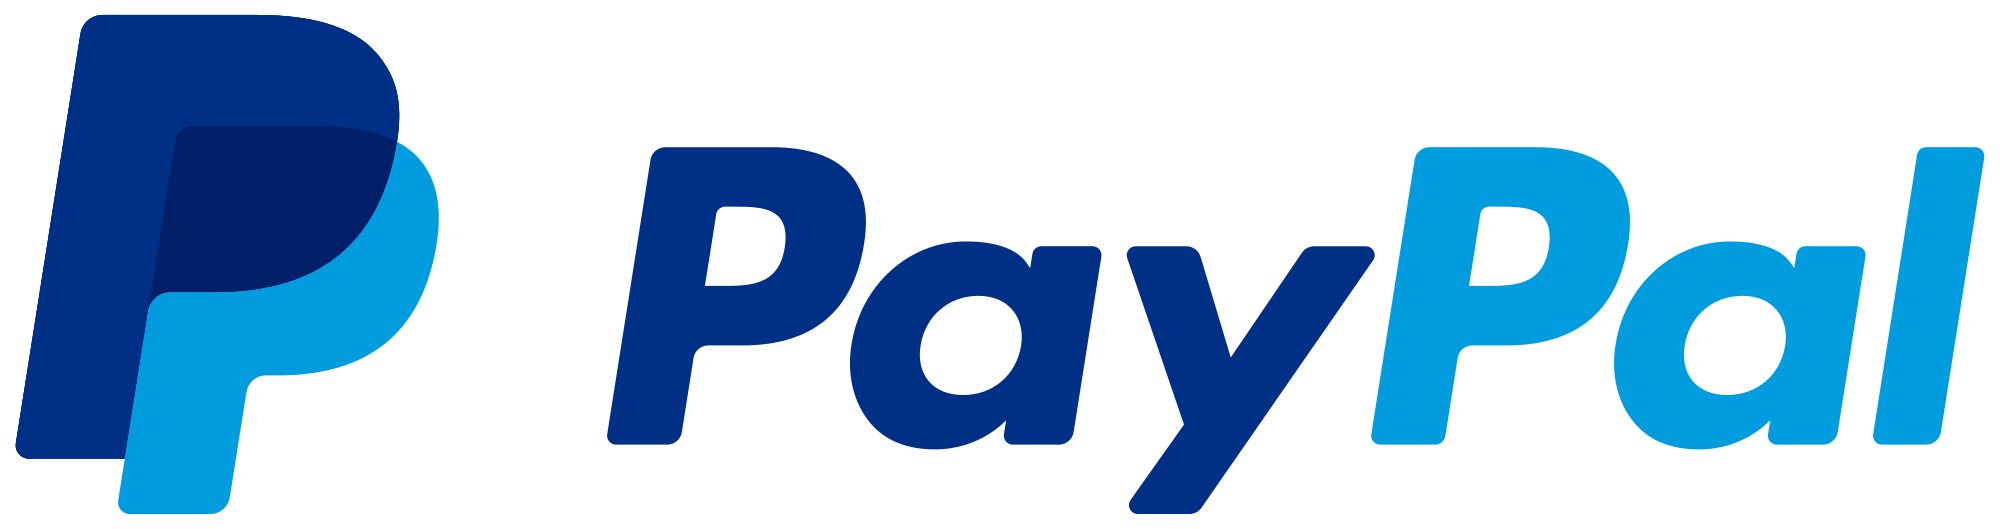 Paypal-logo-bestsecuritysearch